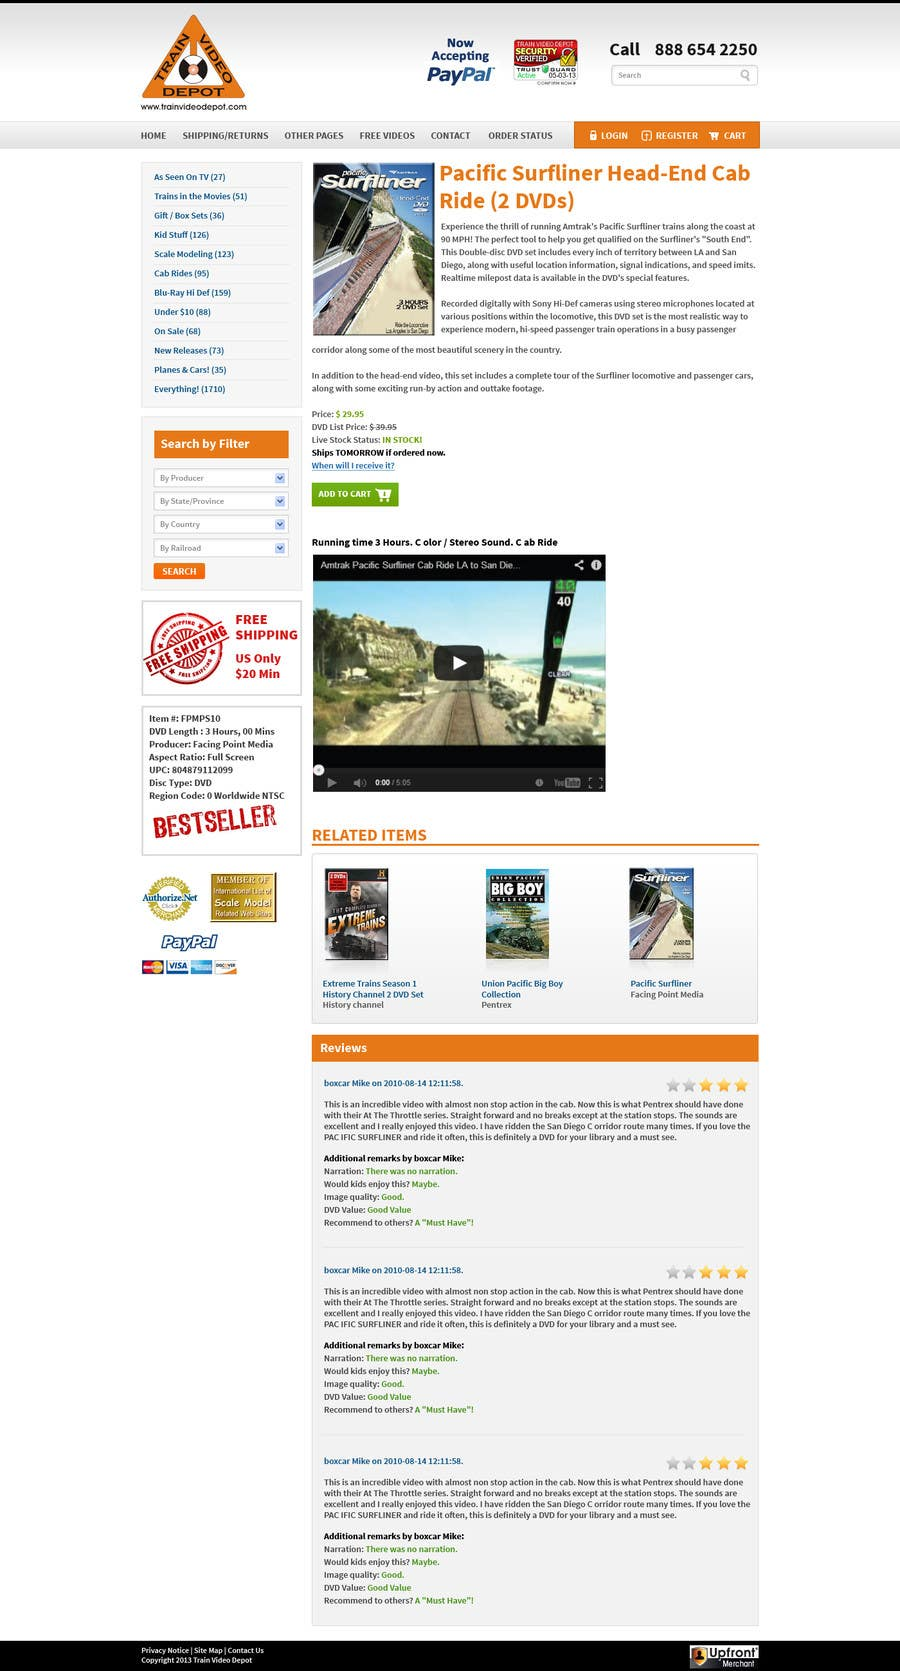 Bài tham dự cuộc thi #                                        3                                      cho                                         Entry page and product page layout